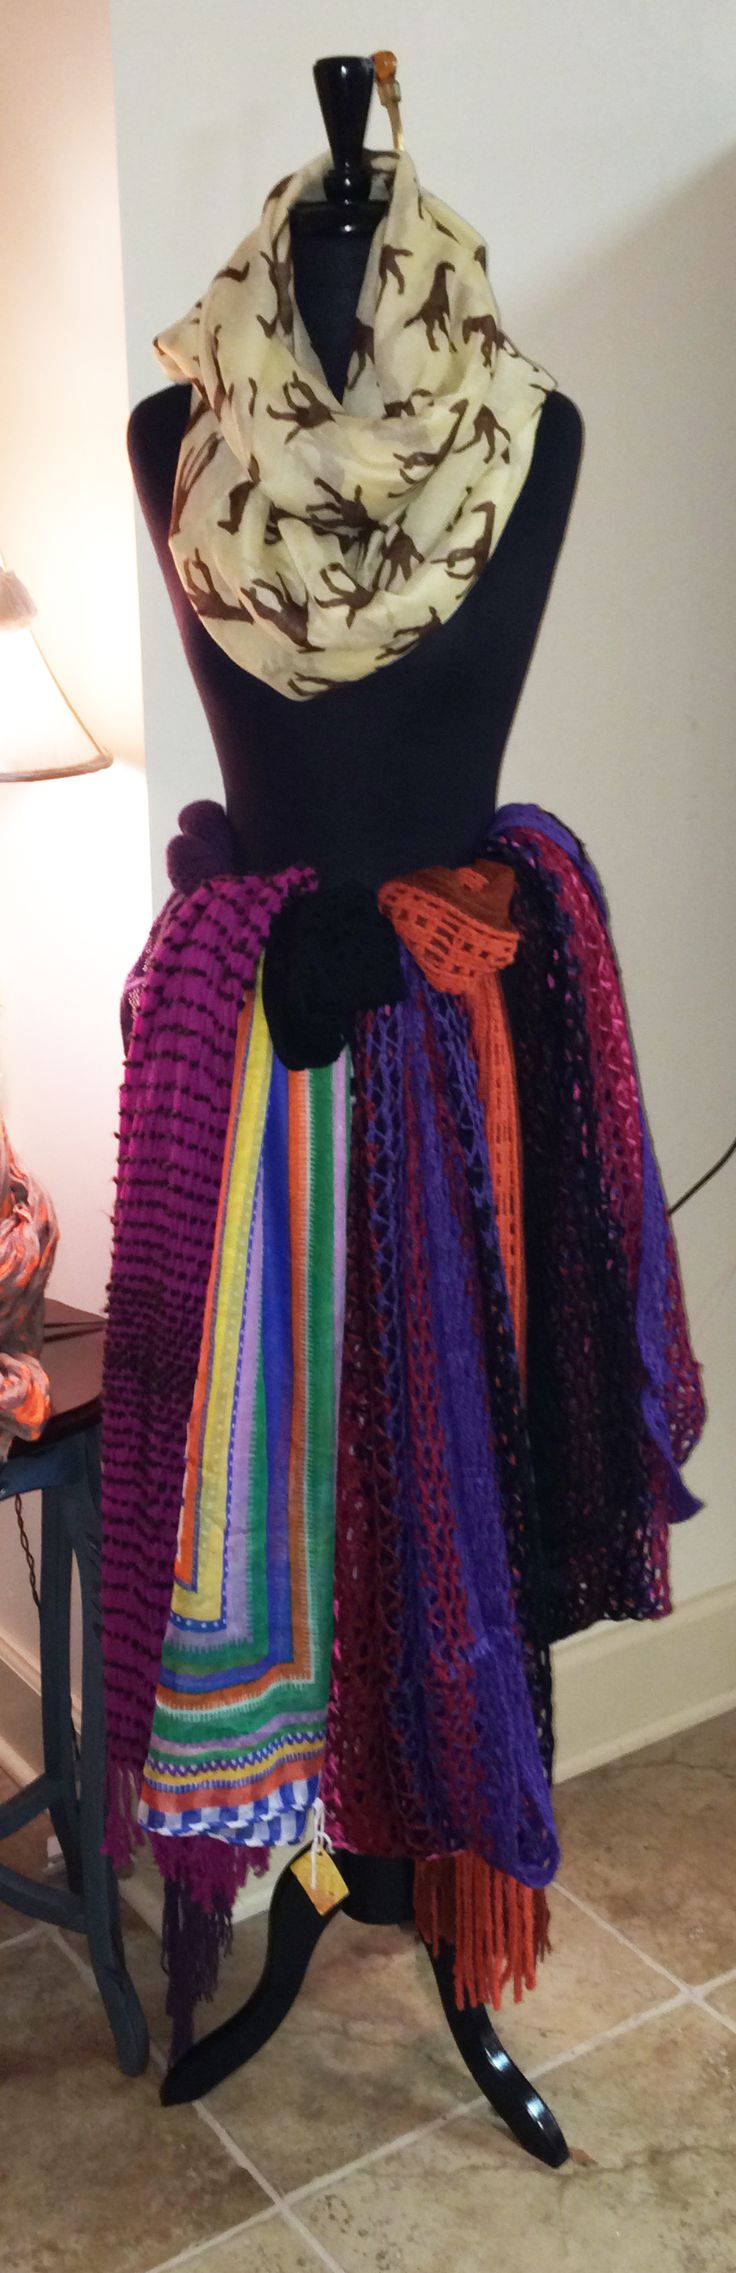 Fun way to display scarves! One around the neck and the rest as a skirt, secure over the belt